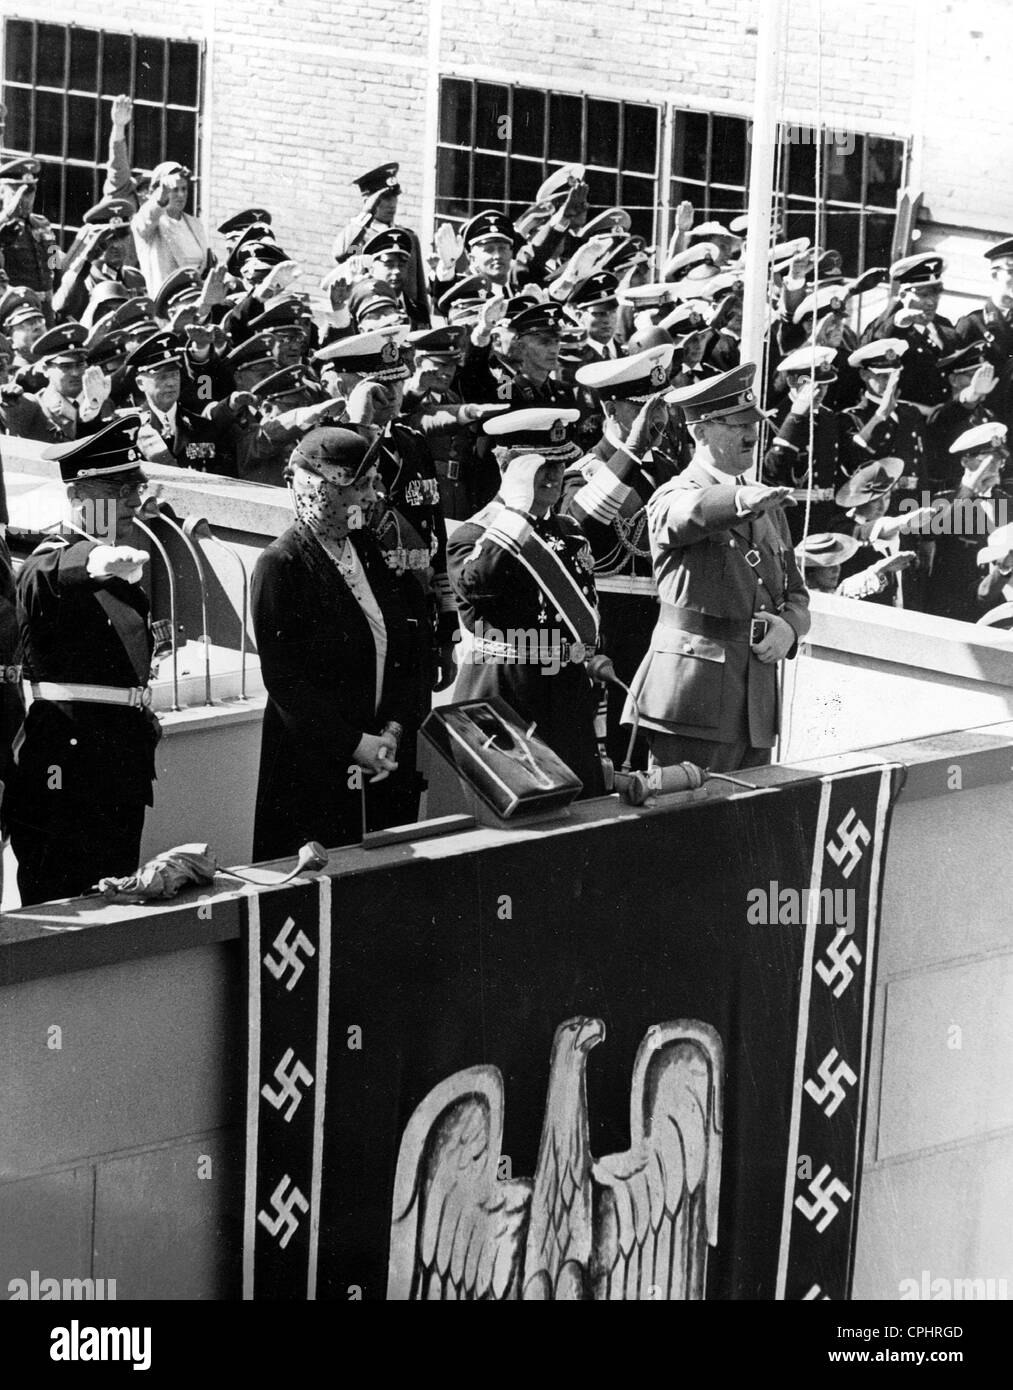 View of Adolf Hitler and Nazi naval leaders at the launch of the German heavy cruiser 'Prinz Eugen', 1938 - Stock Image